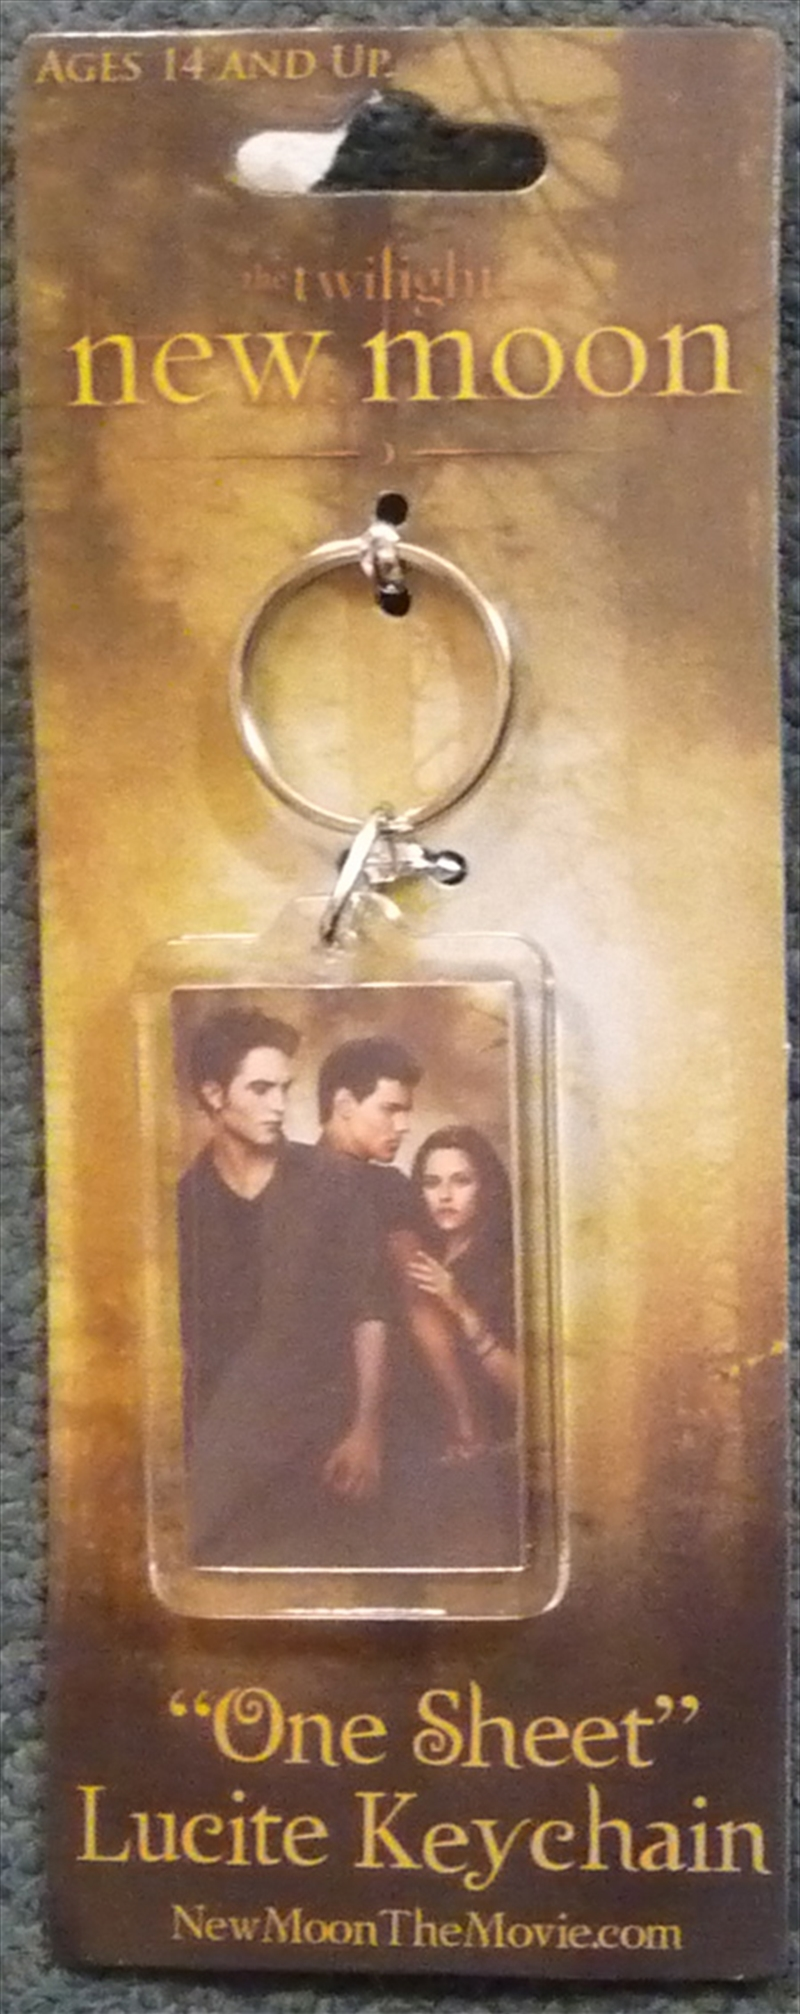 The Twilight Saga: New Moon - Lucite Keychain One Sheet | Accessories